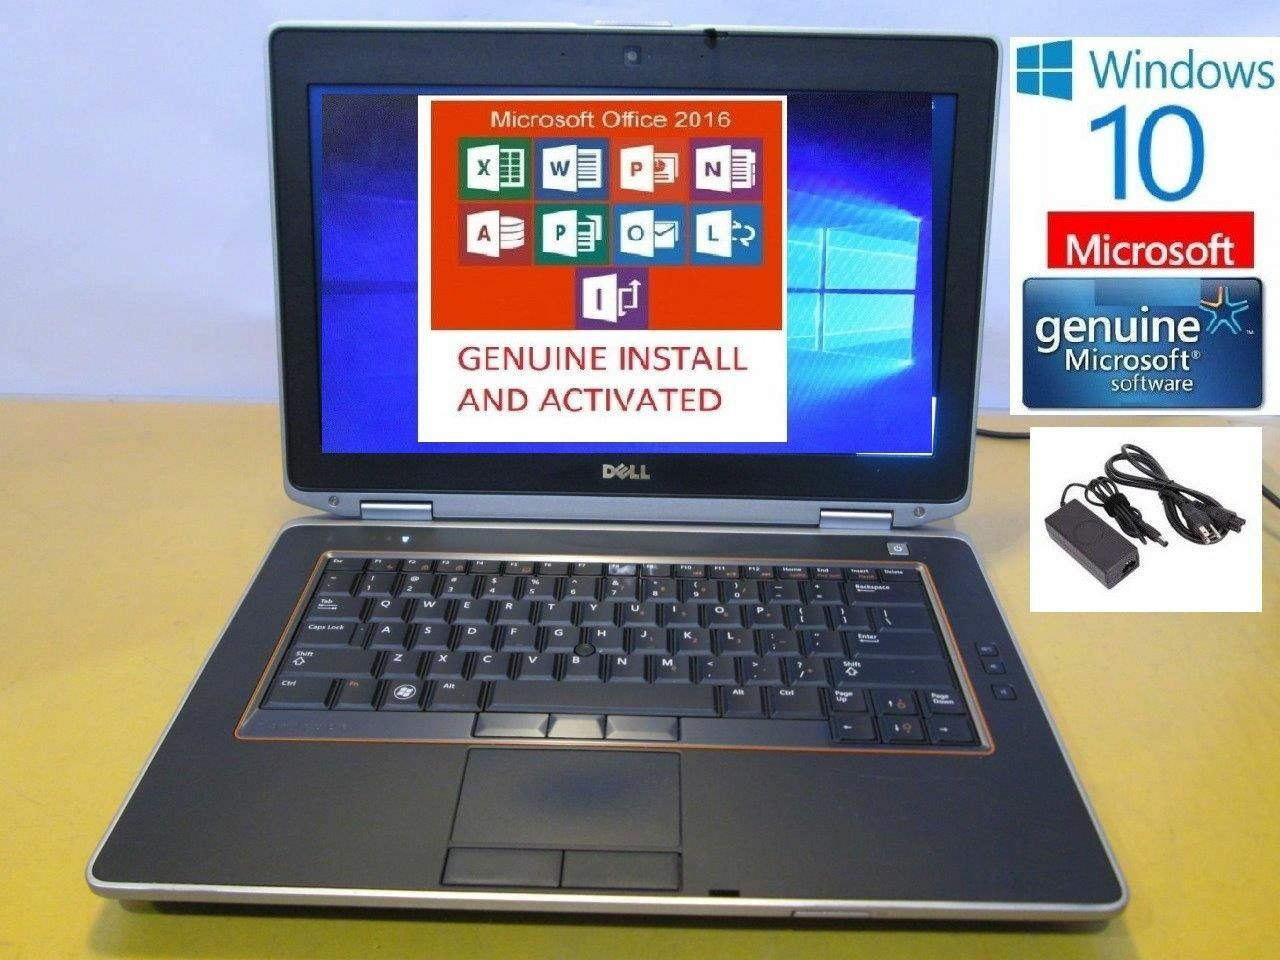 DELL LATITUDE E6320 LAPTOP WINDOWS 10 WIN INTEL i5 2.5GHz DVD-RW